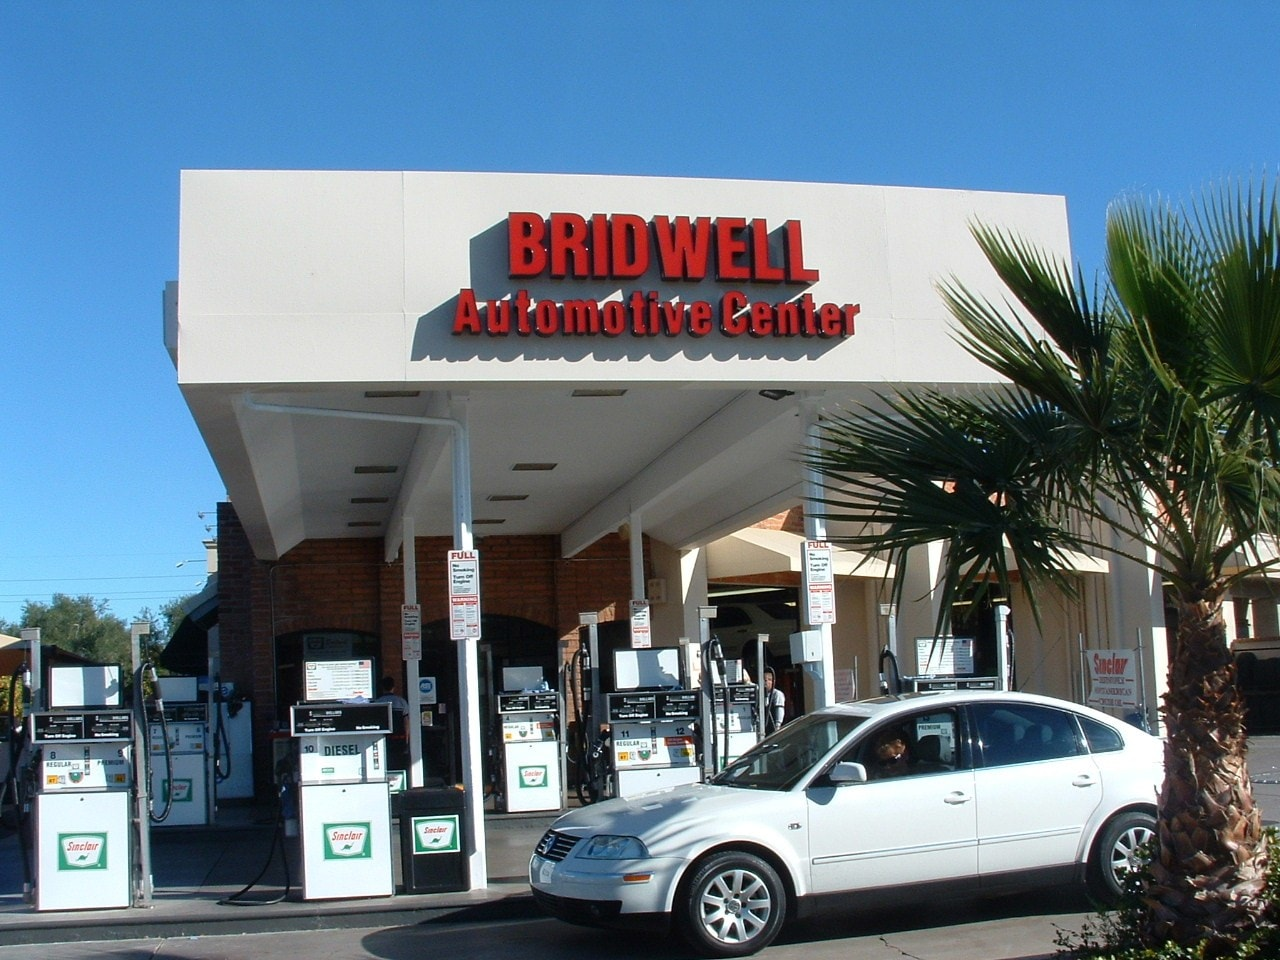 BRIDWELL AUTOMOTIVE CENTER